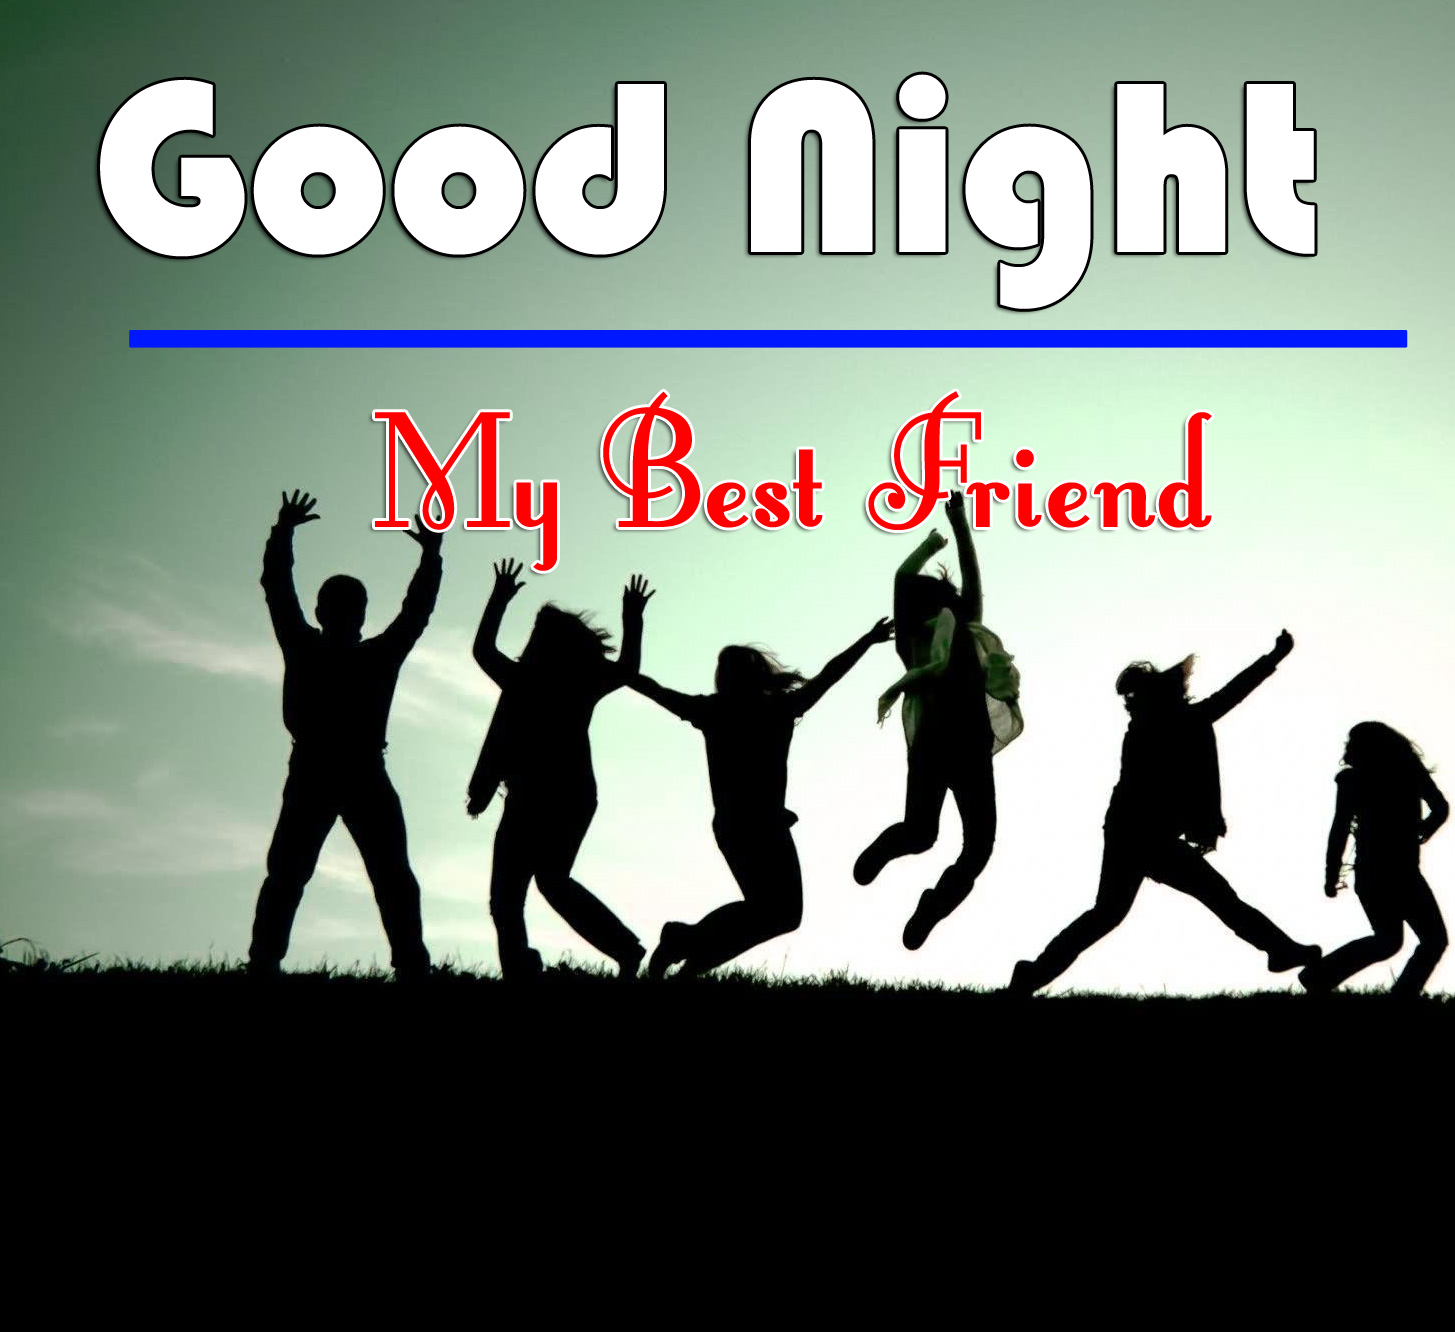 Good Night Images For Best Friends 7